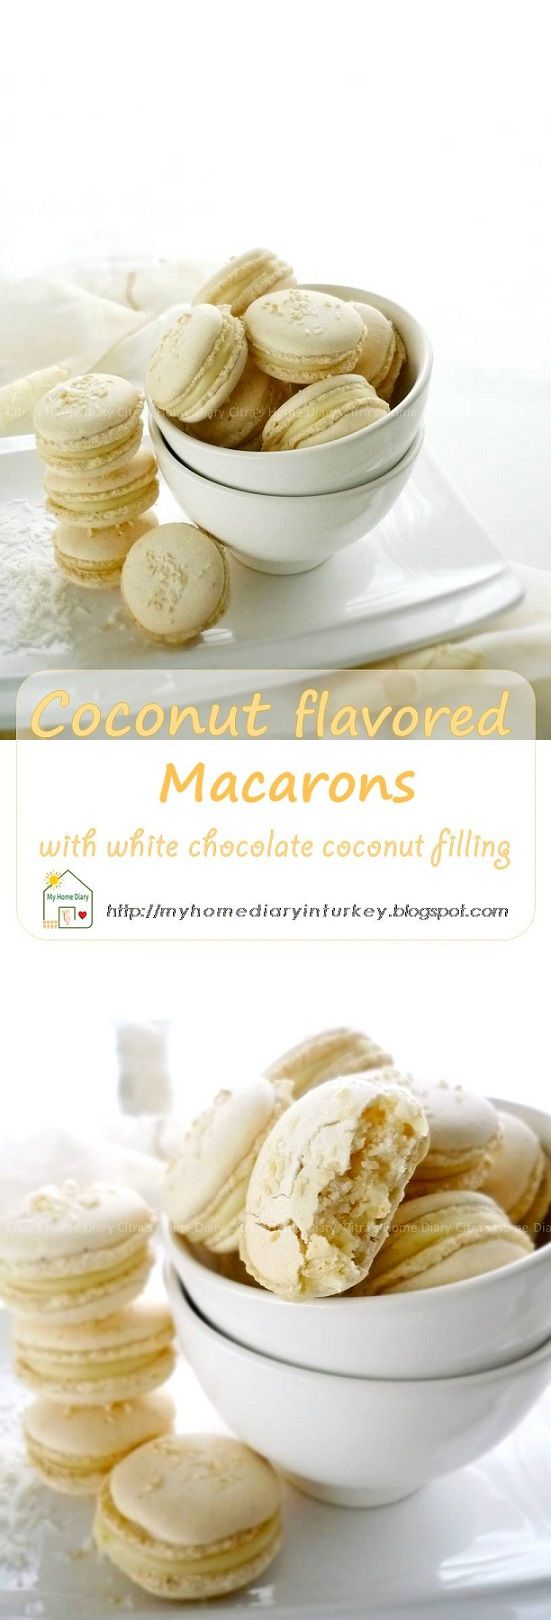 This coconut flavor macarons is happen part of my flavor journey on macarons making #coconutmacarons #macaronstipsandhow #macaronsrecipe #cookies #sandwichcookies #coconut #whitechocolatefilling #citrashomediary